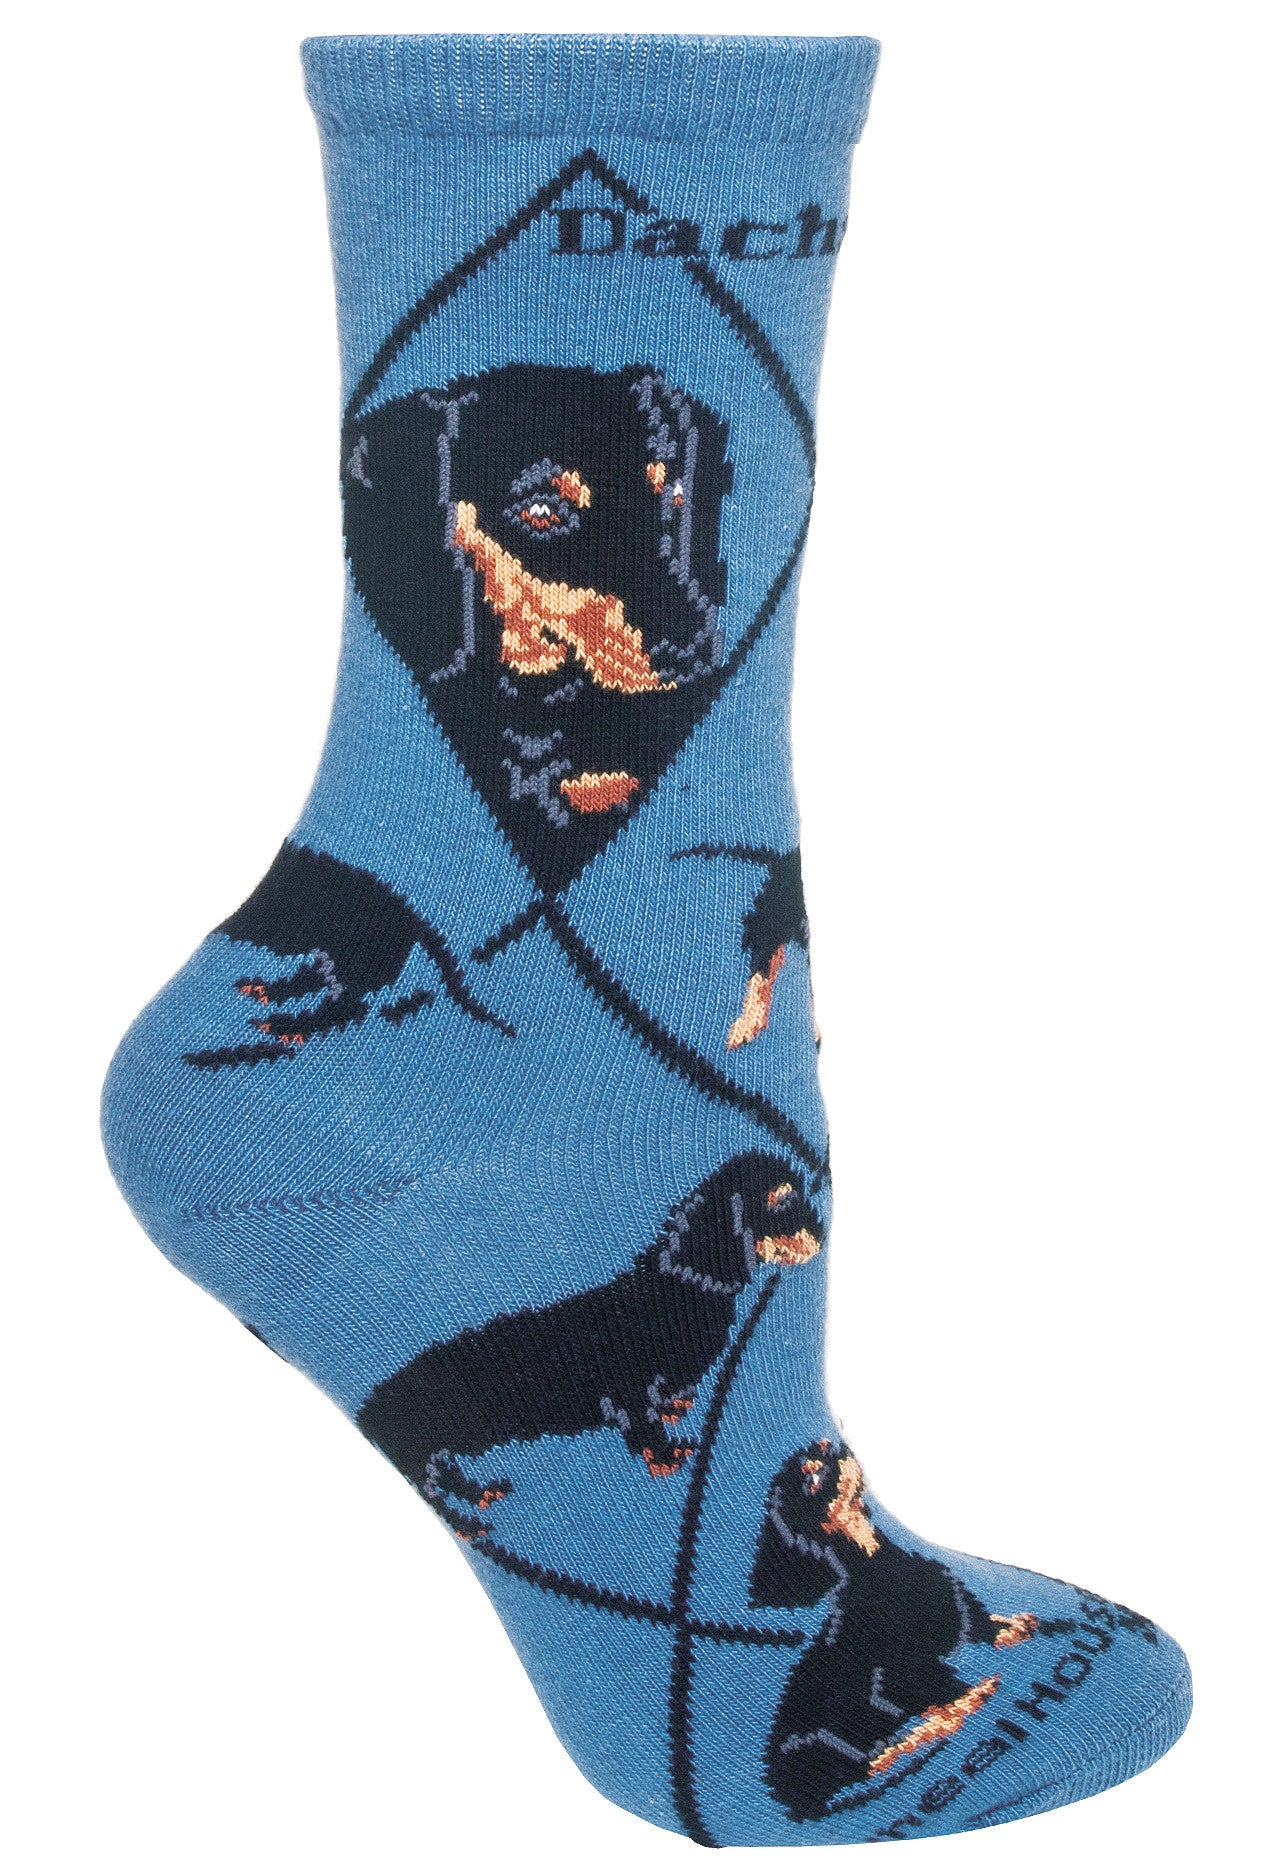 Black Dachshunds on Blue Crew Socks